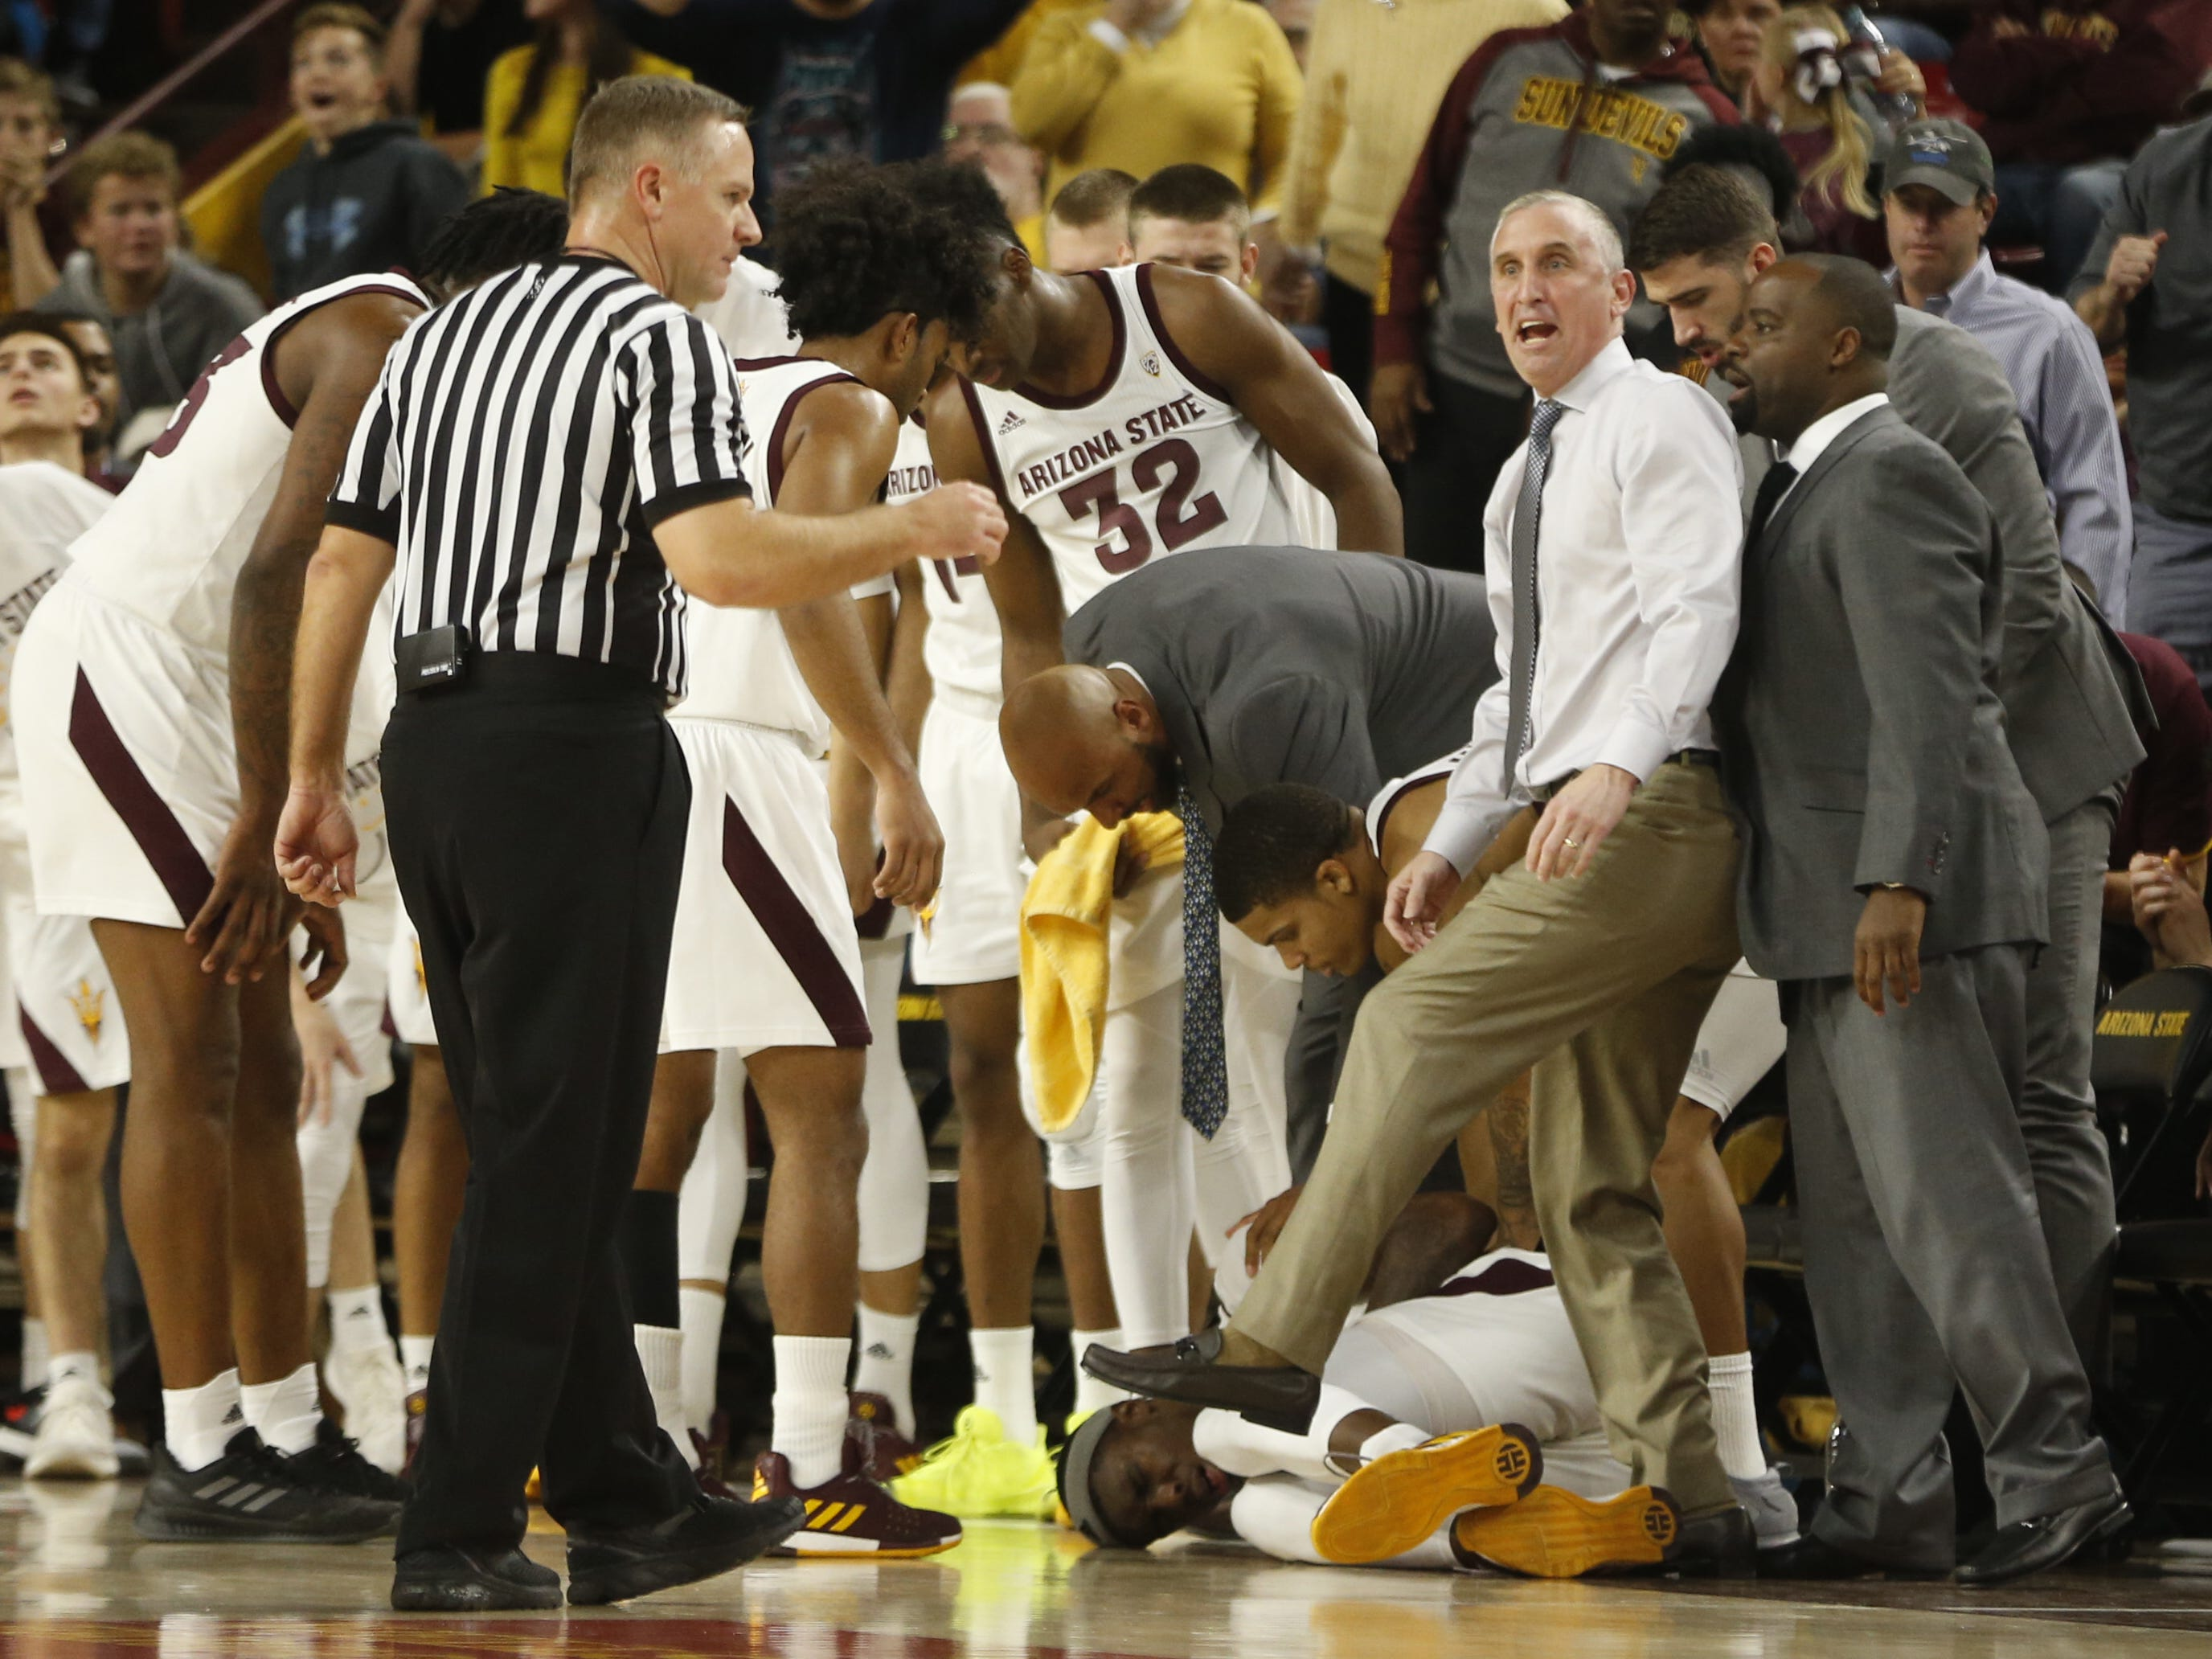 ASU's head coach Bobby Hurley argues with an official as forward Zylan Cheatham lays down after falling over a Princeton player during the first half at Wells Fargo Arena in Tempe, Ariz. on December 29, 2018.